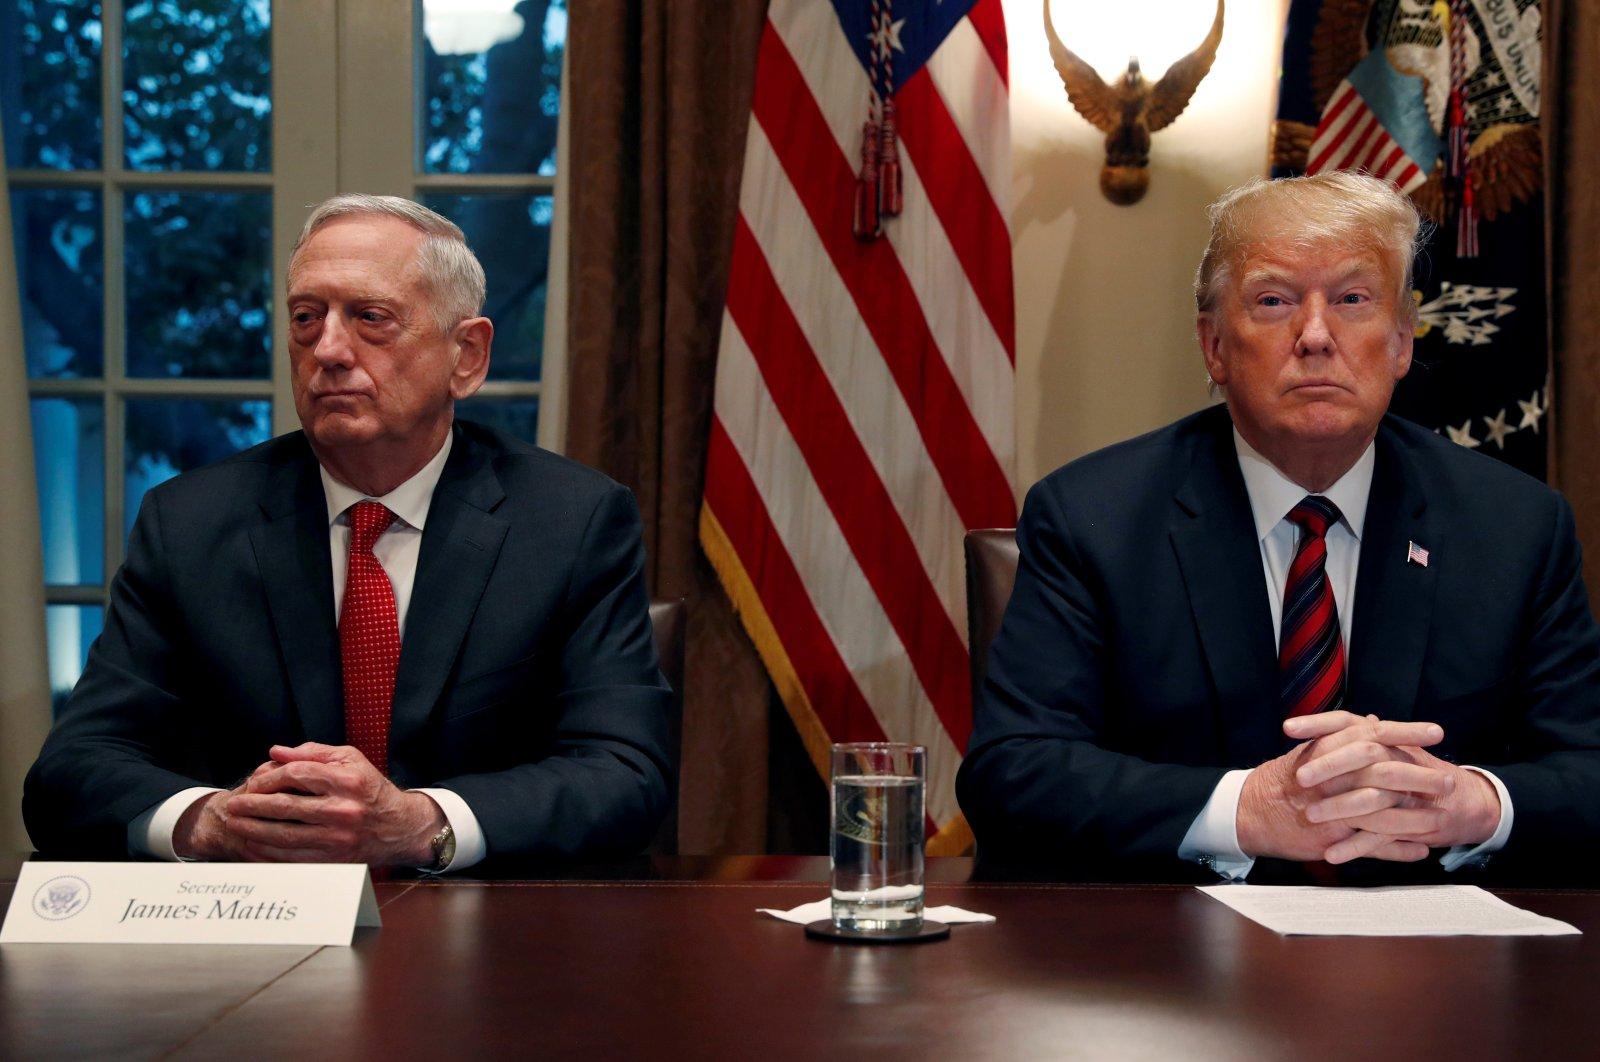 U.S. Defense Secretary James Mattis, left, sits next to U.S. President Donald Trump during a briefing with senior military leaders in the Cabinet Room at the White House in Washington, Oct. 23, 2018. (Reuters Photo)